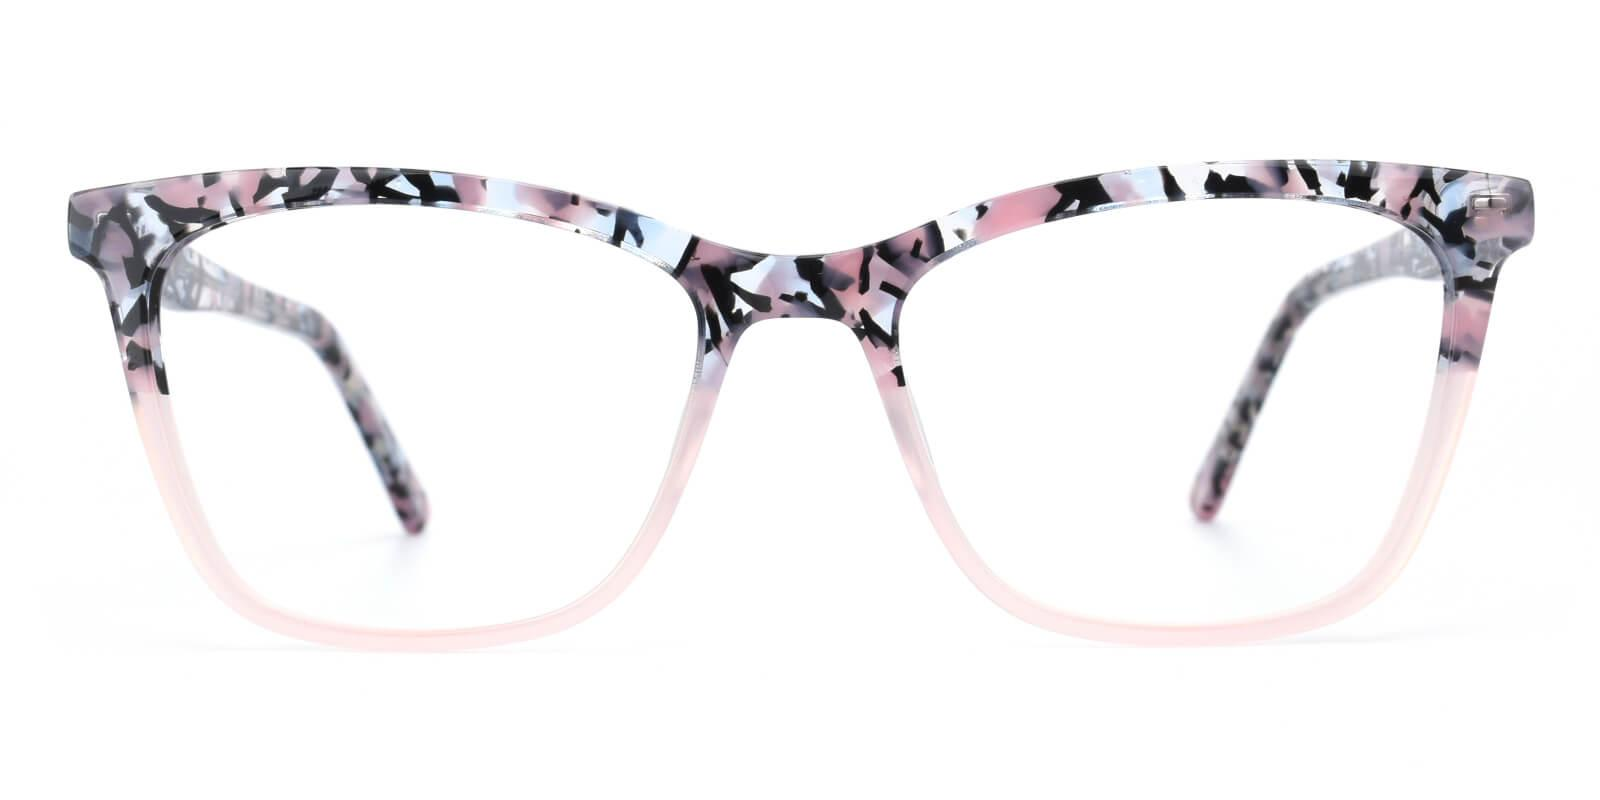 Beatrice-Pink-Cat-Acetate-Eyeglasses-additional2